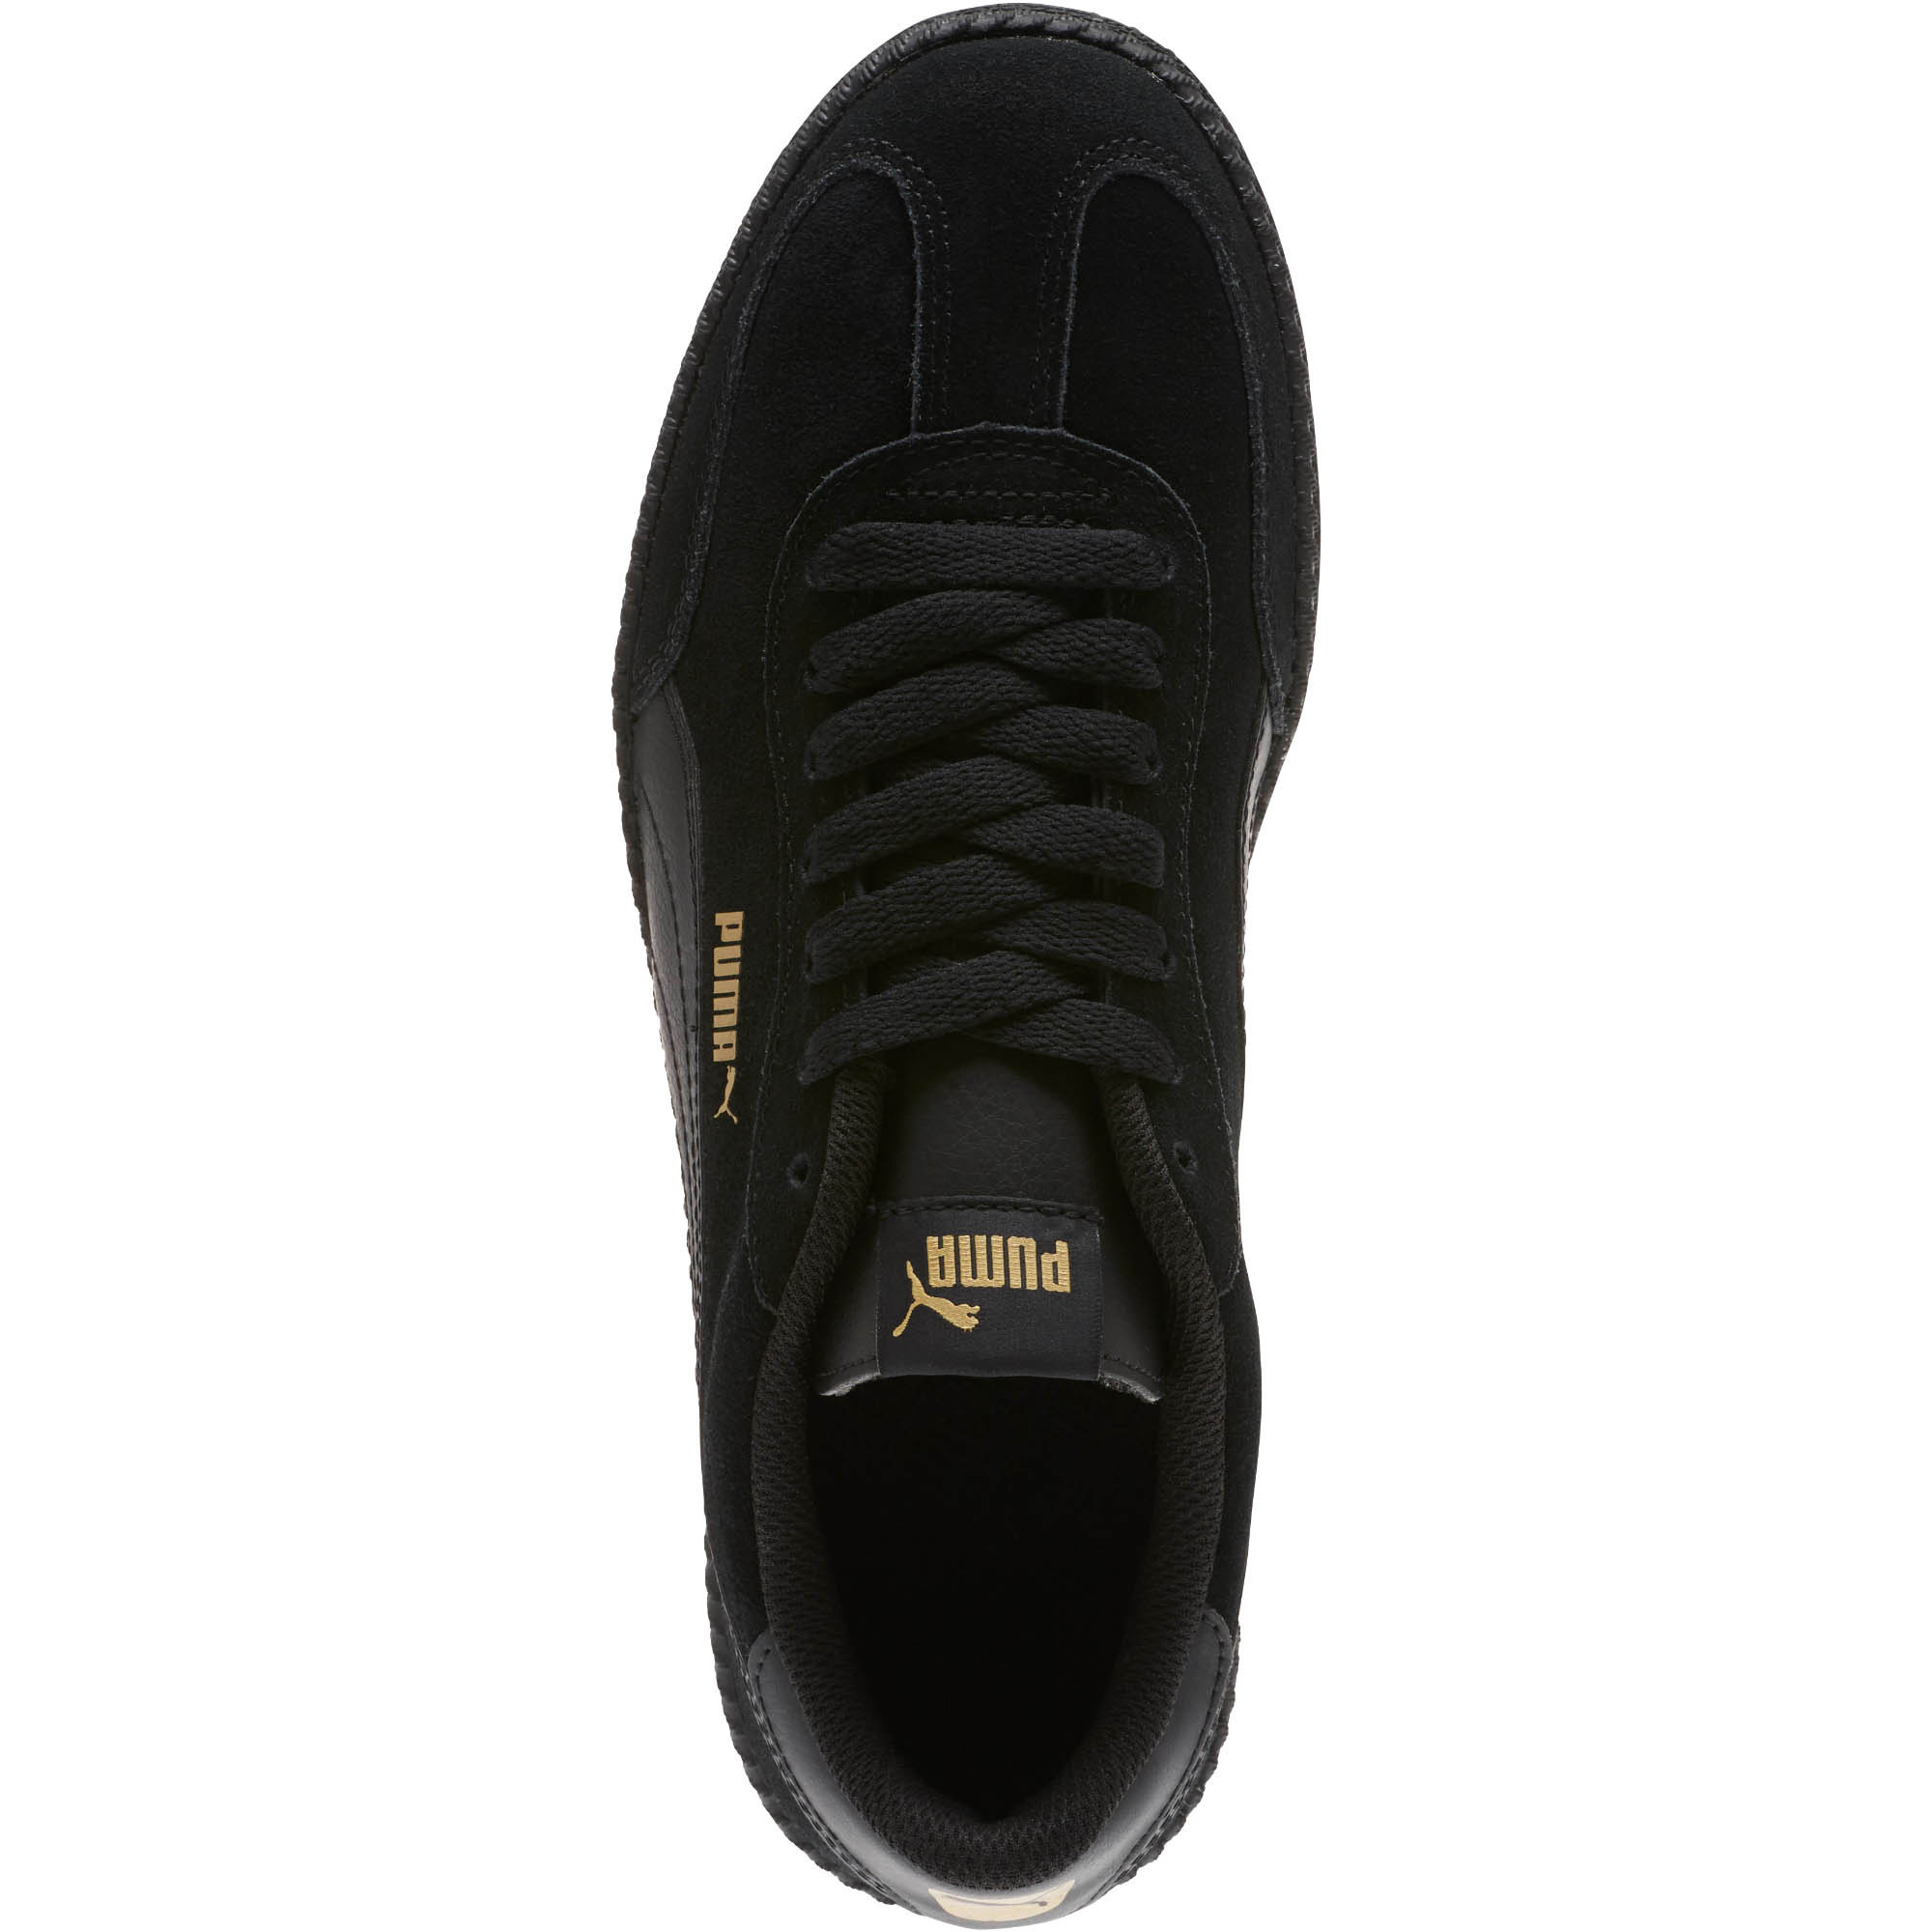 PUMA-Astro-Cup-Suede-Sneakers-Men-Shoe-Basics thumbnail 5